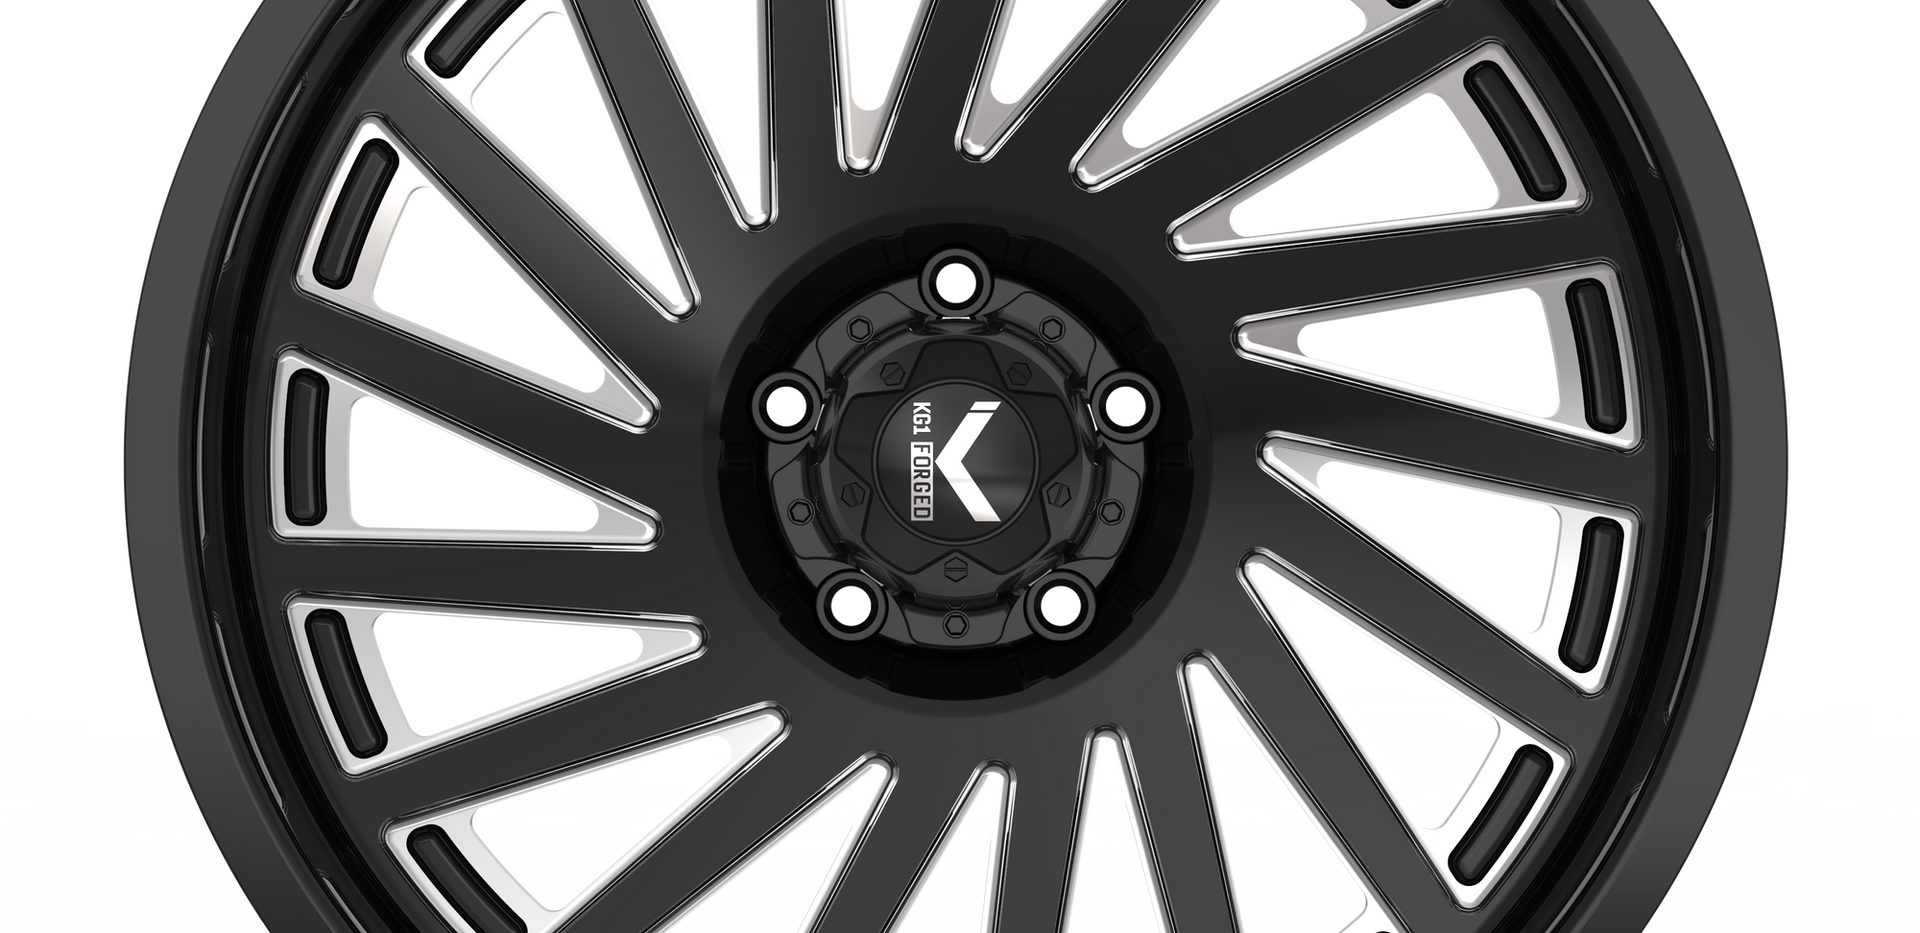 BOOST KC006L-2212-5H- Black Machining-1.